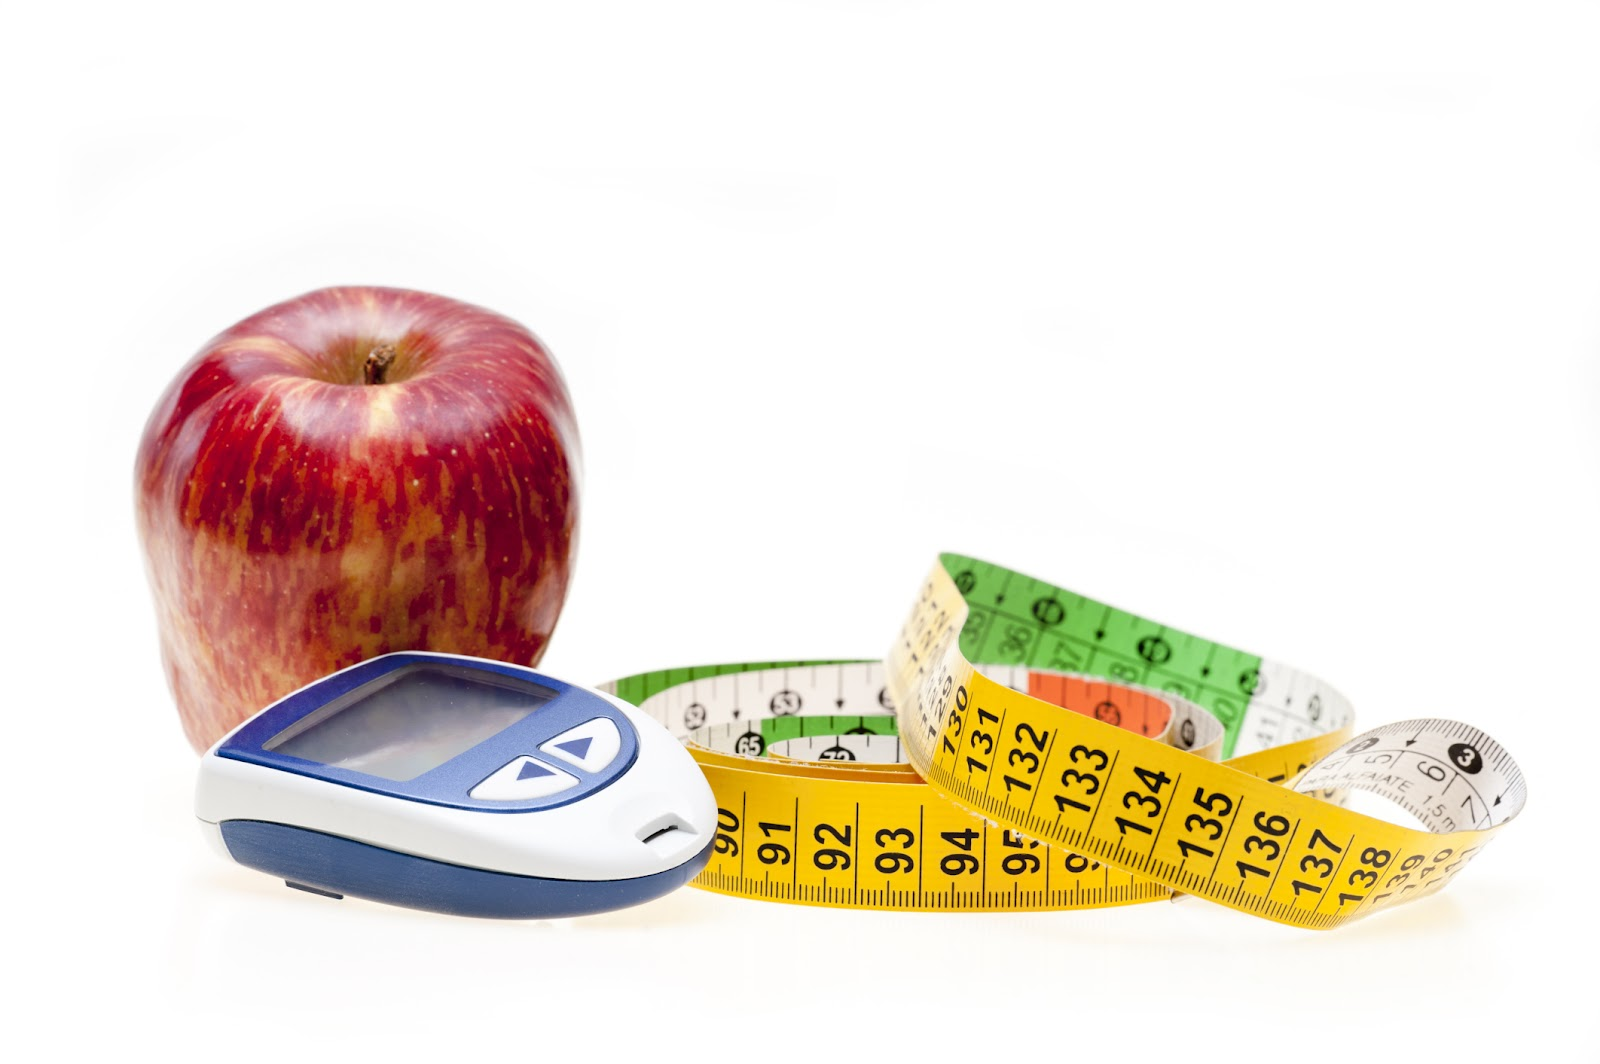 Diet and Exercise possibly remisses Diabetes